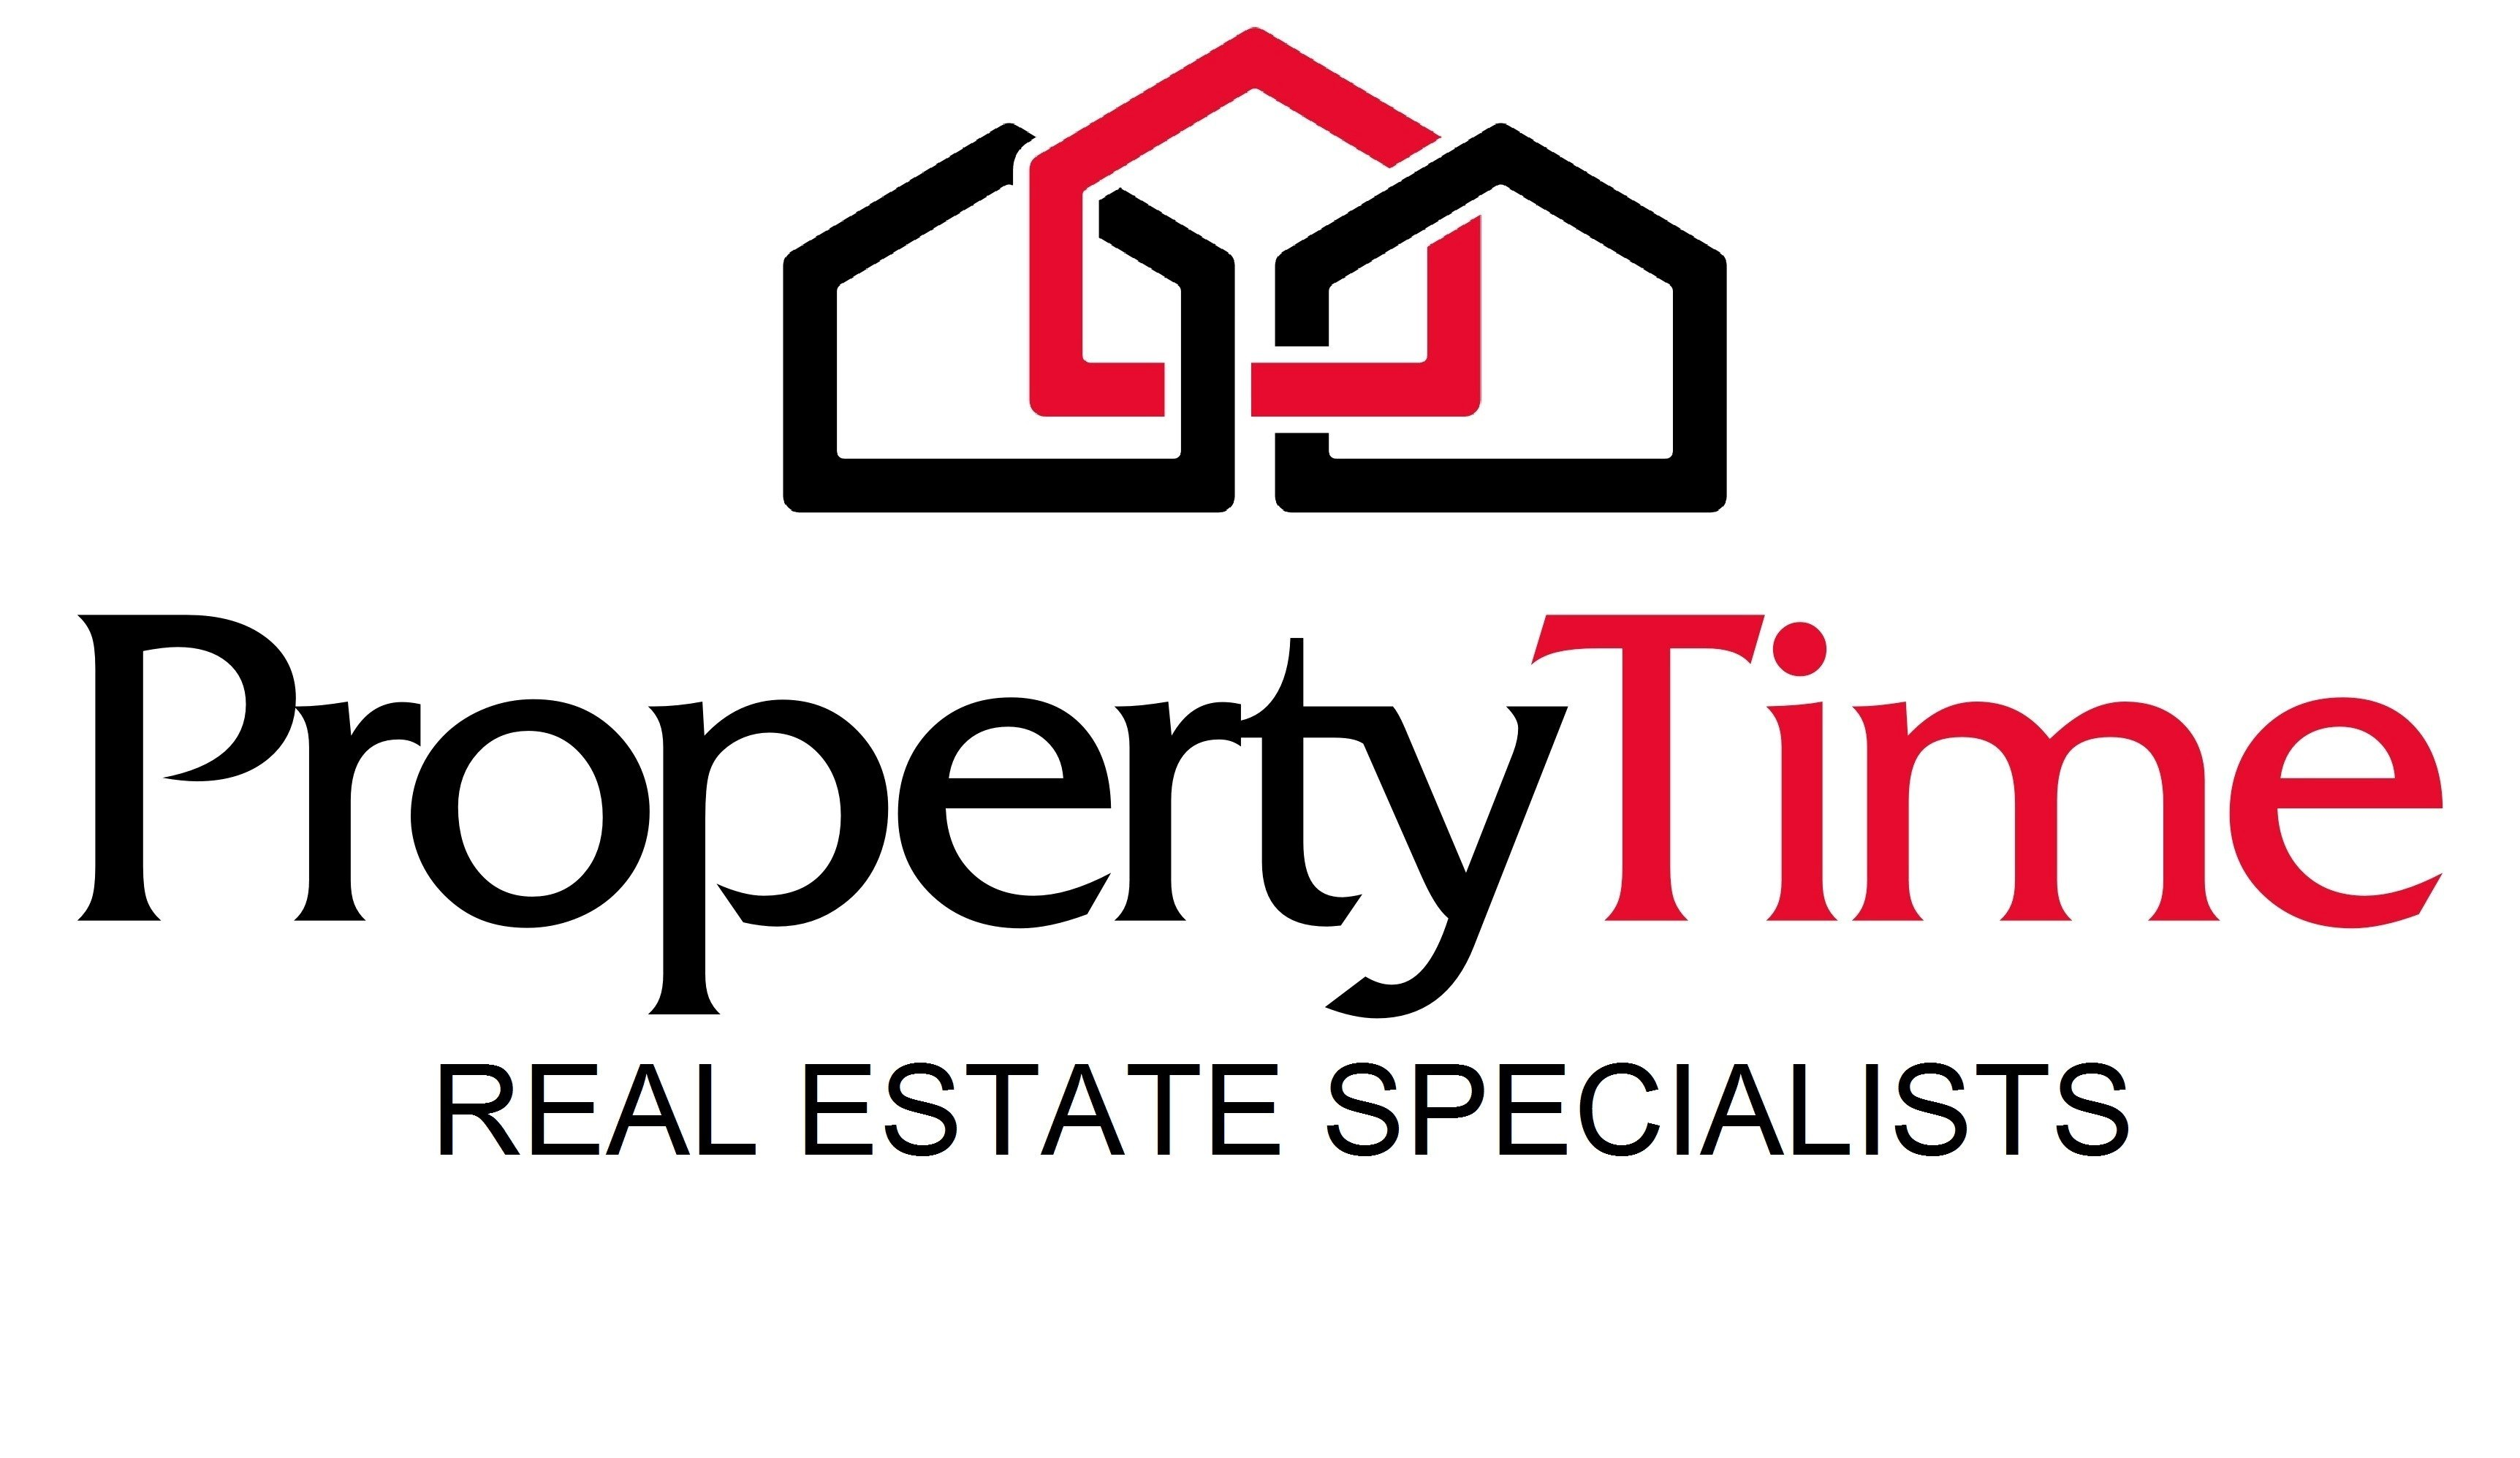 Property Time